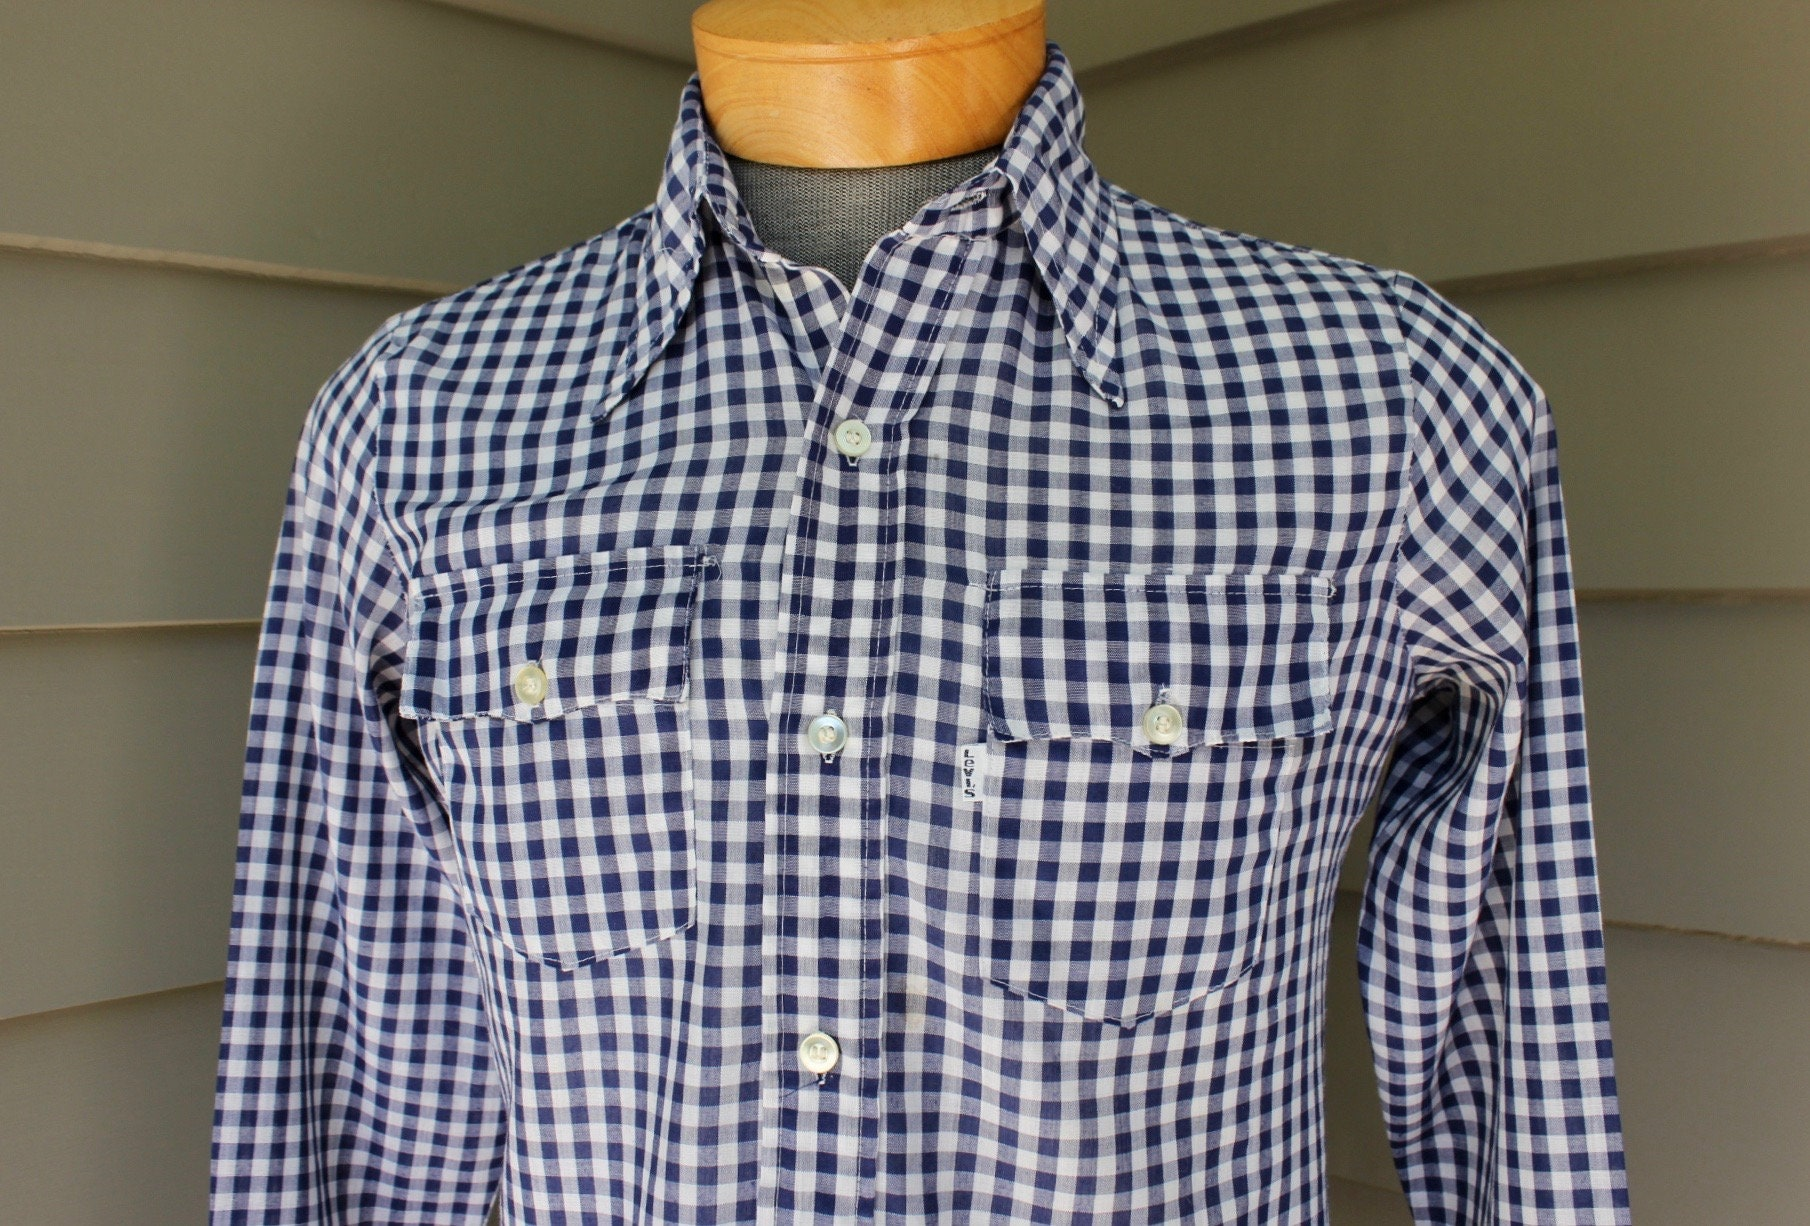 1970s Men's Shirt Styles – Vintage 70s Shirts for Guys Vintage 1970s -Levis- Mens Long Sleeve Shirt. Blue Gingham Check. White Tab Labeling. Spear Point Collar - Flapped Pockets. Small $41.79 AT vintagedancer.com